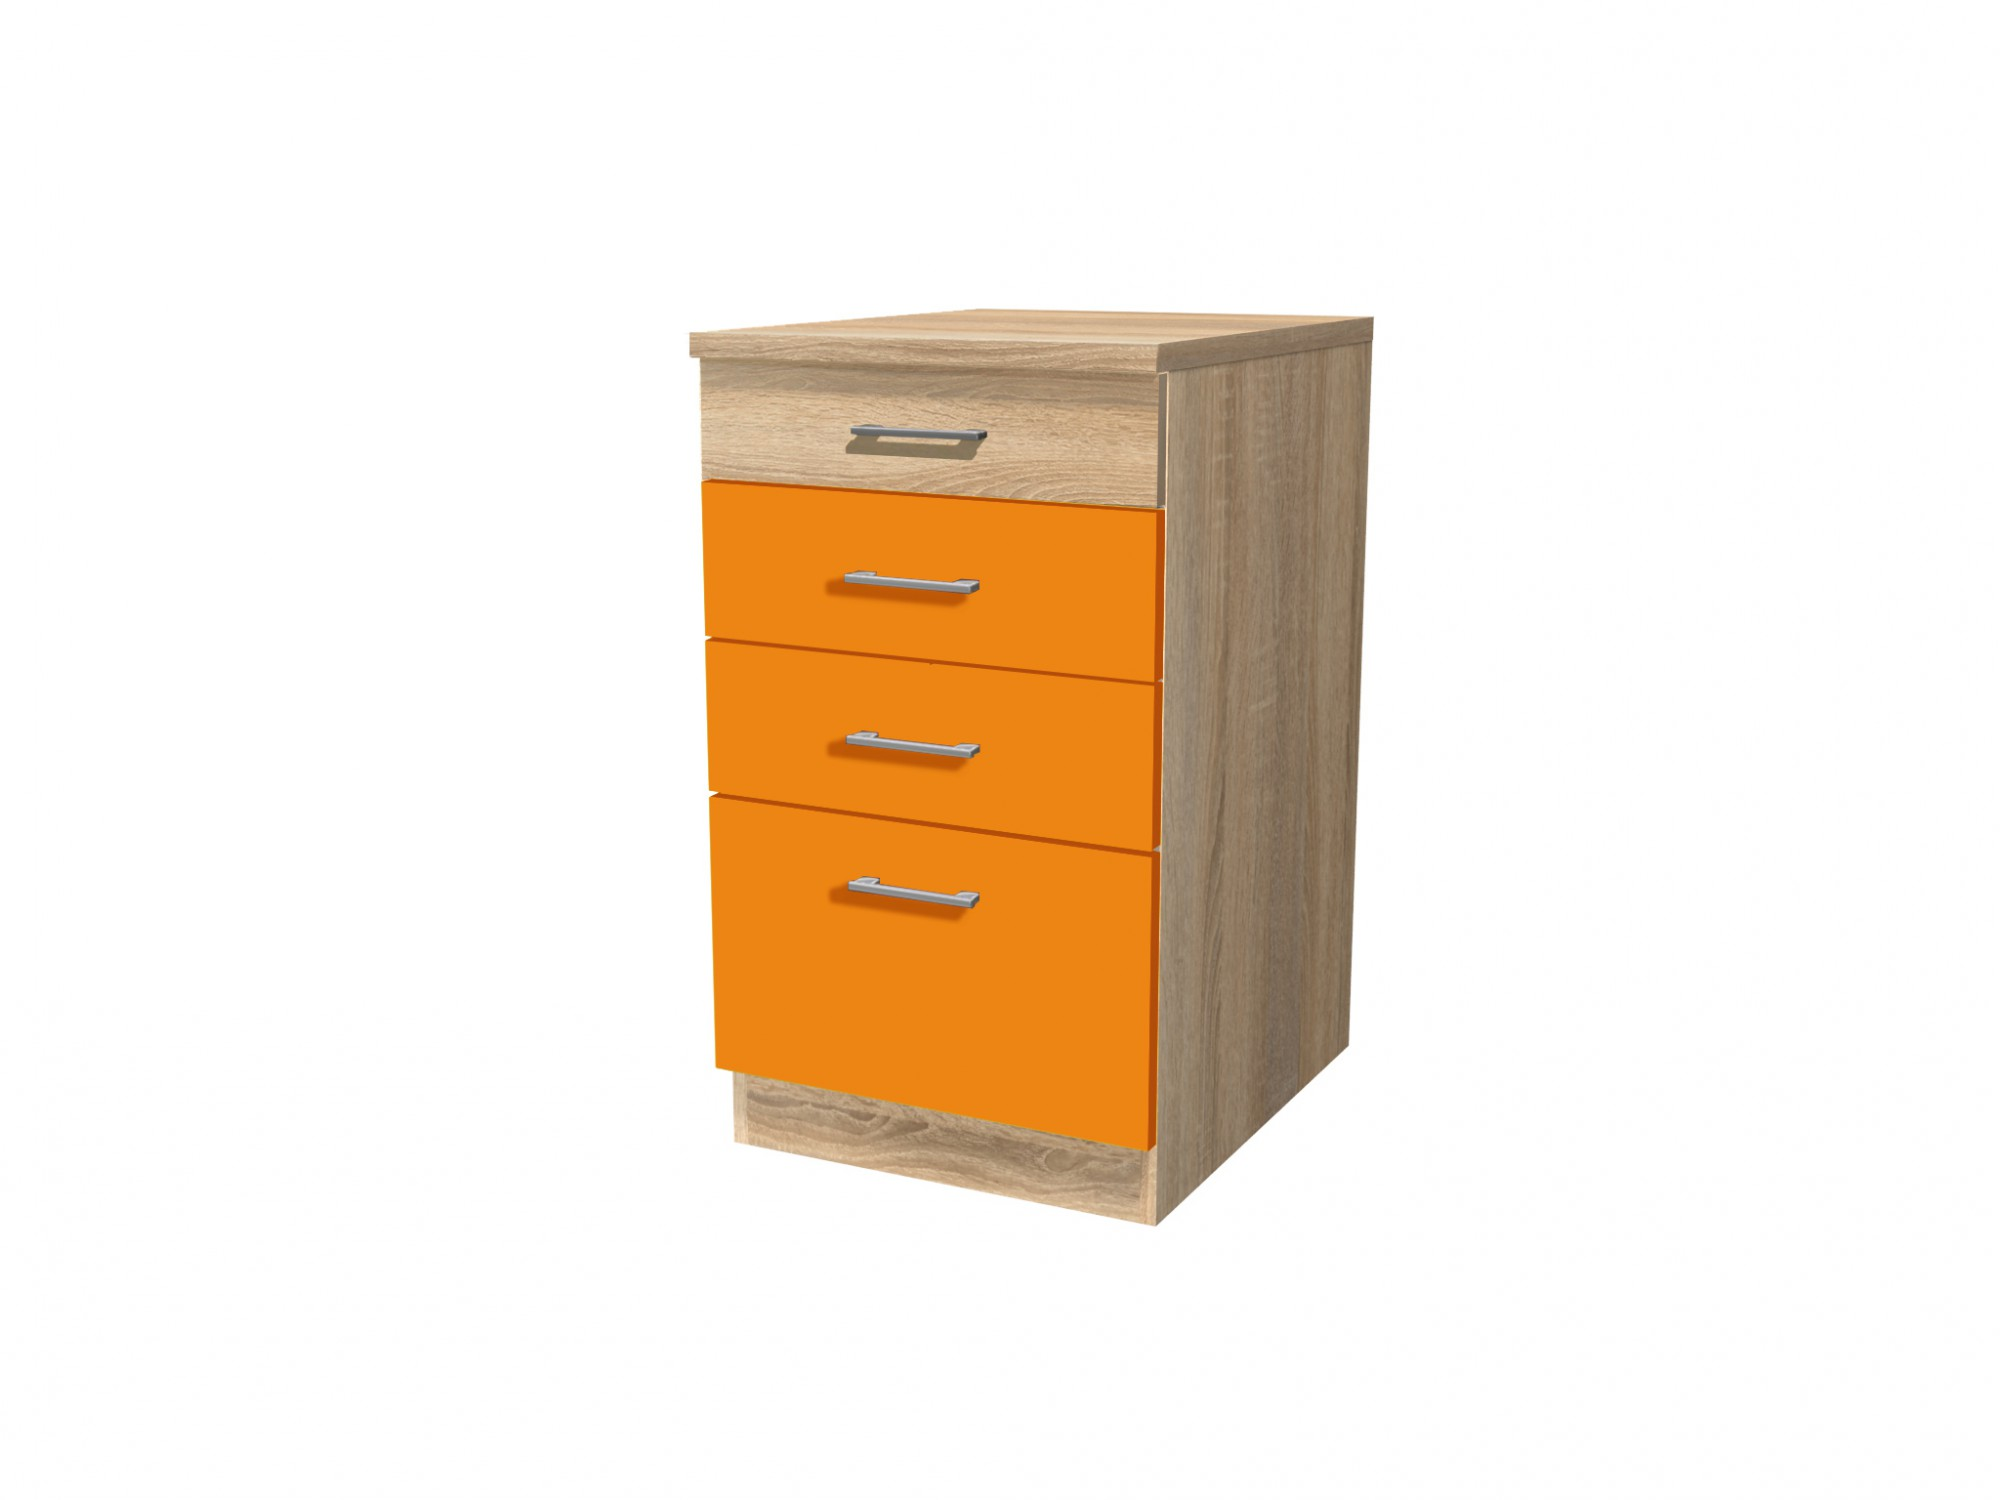 k chen unterschrank rom k chenschrank mit schubladen 50 cm orange sonoma weiss ebay. Black Bedroom Furniture Sets. Home Design Ideas